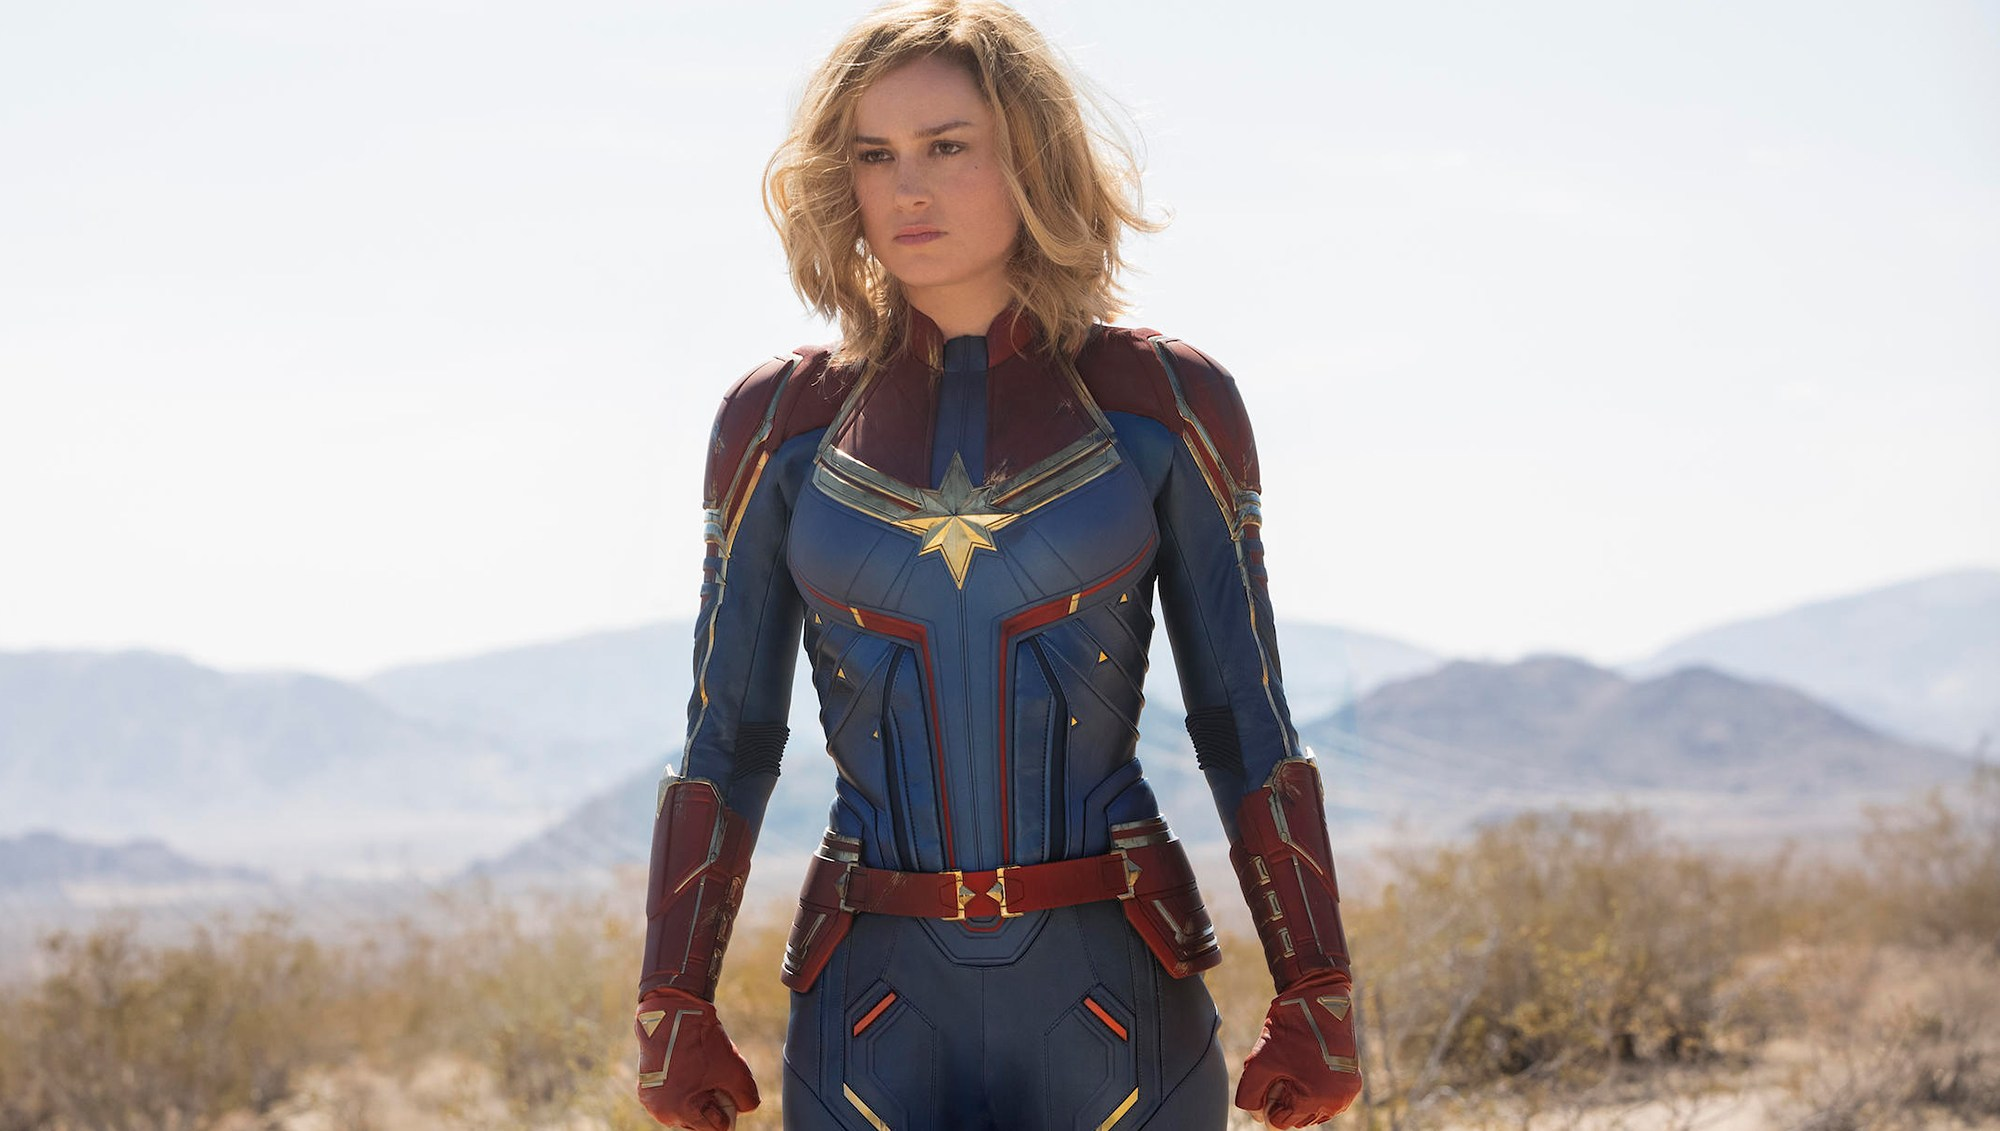 stars as superheroes Brie Larson